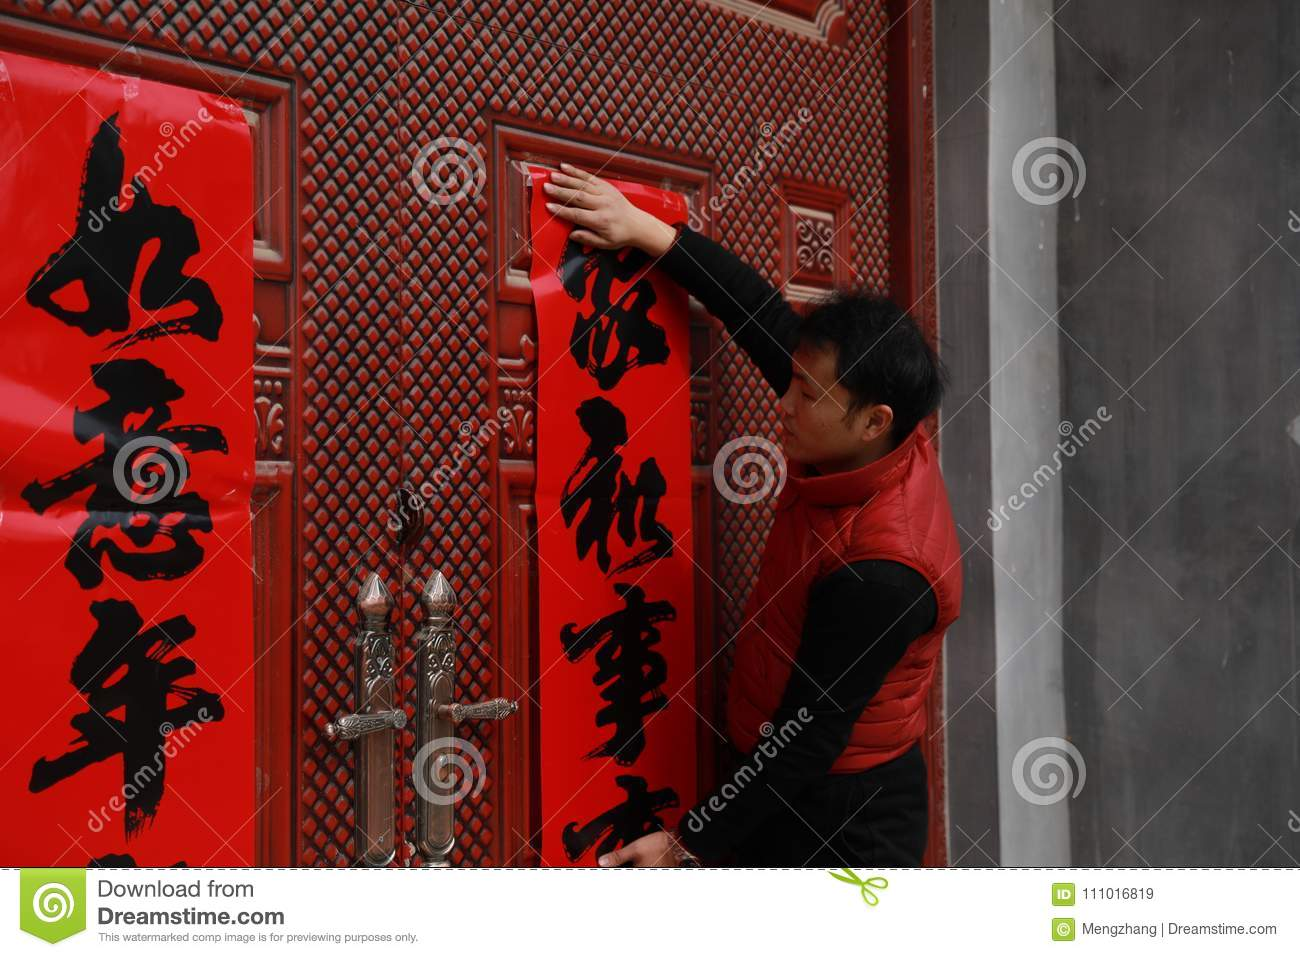 Chinese Couplets Stock Images - Download 807 Royalty Free Photos